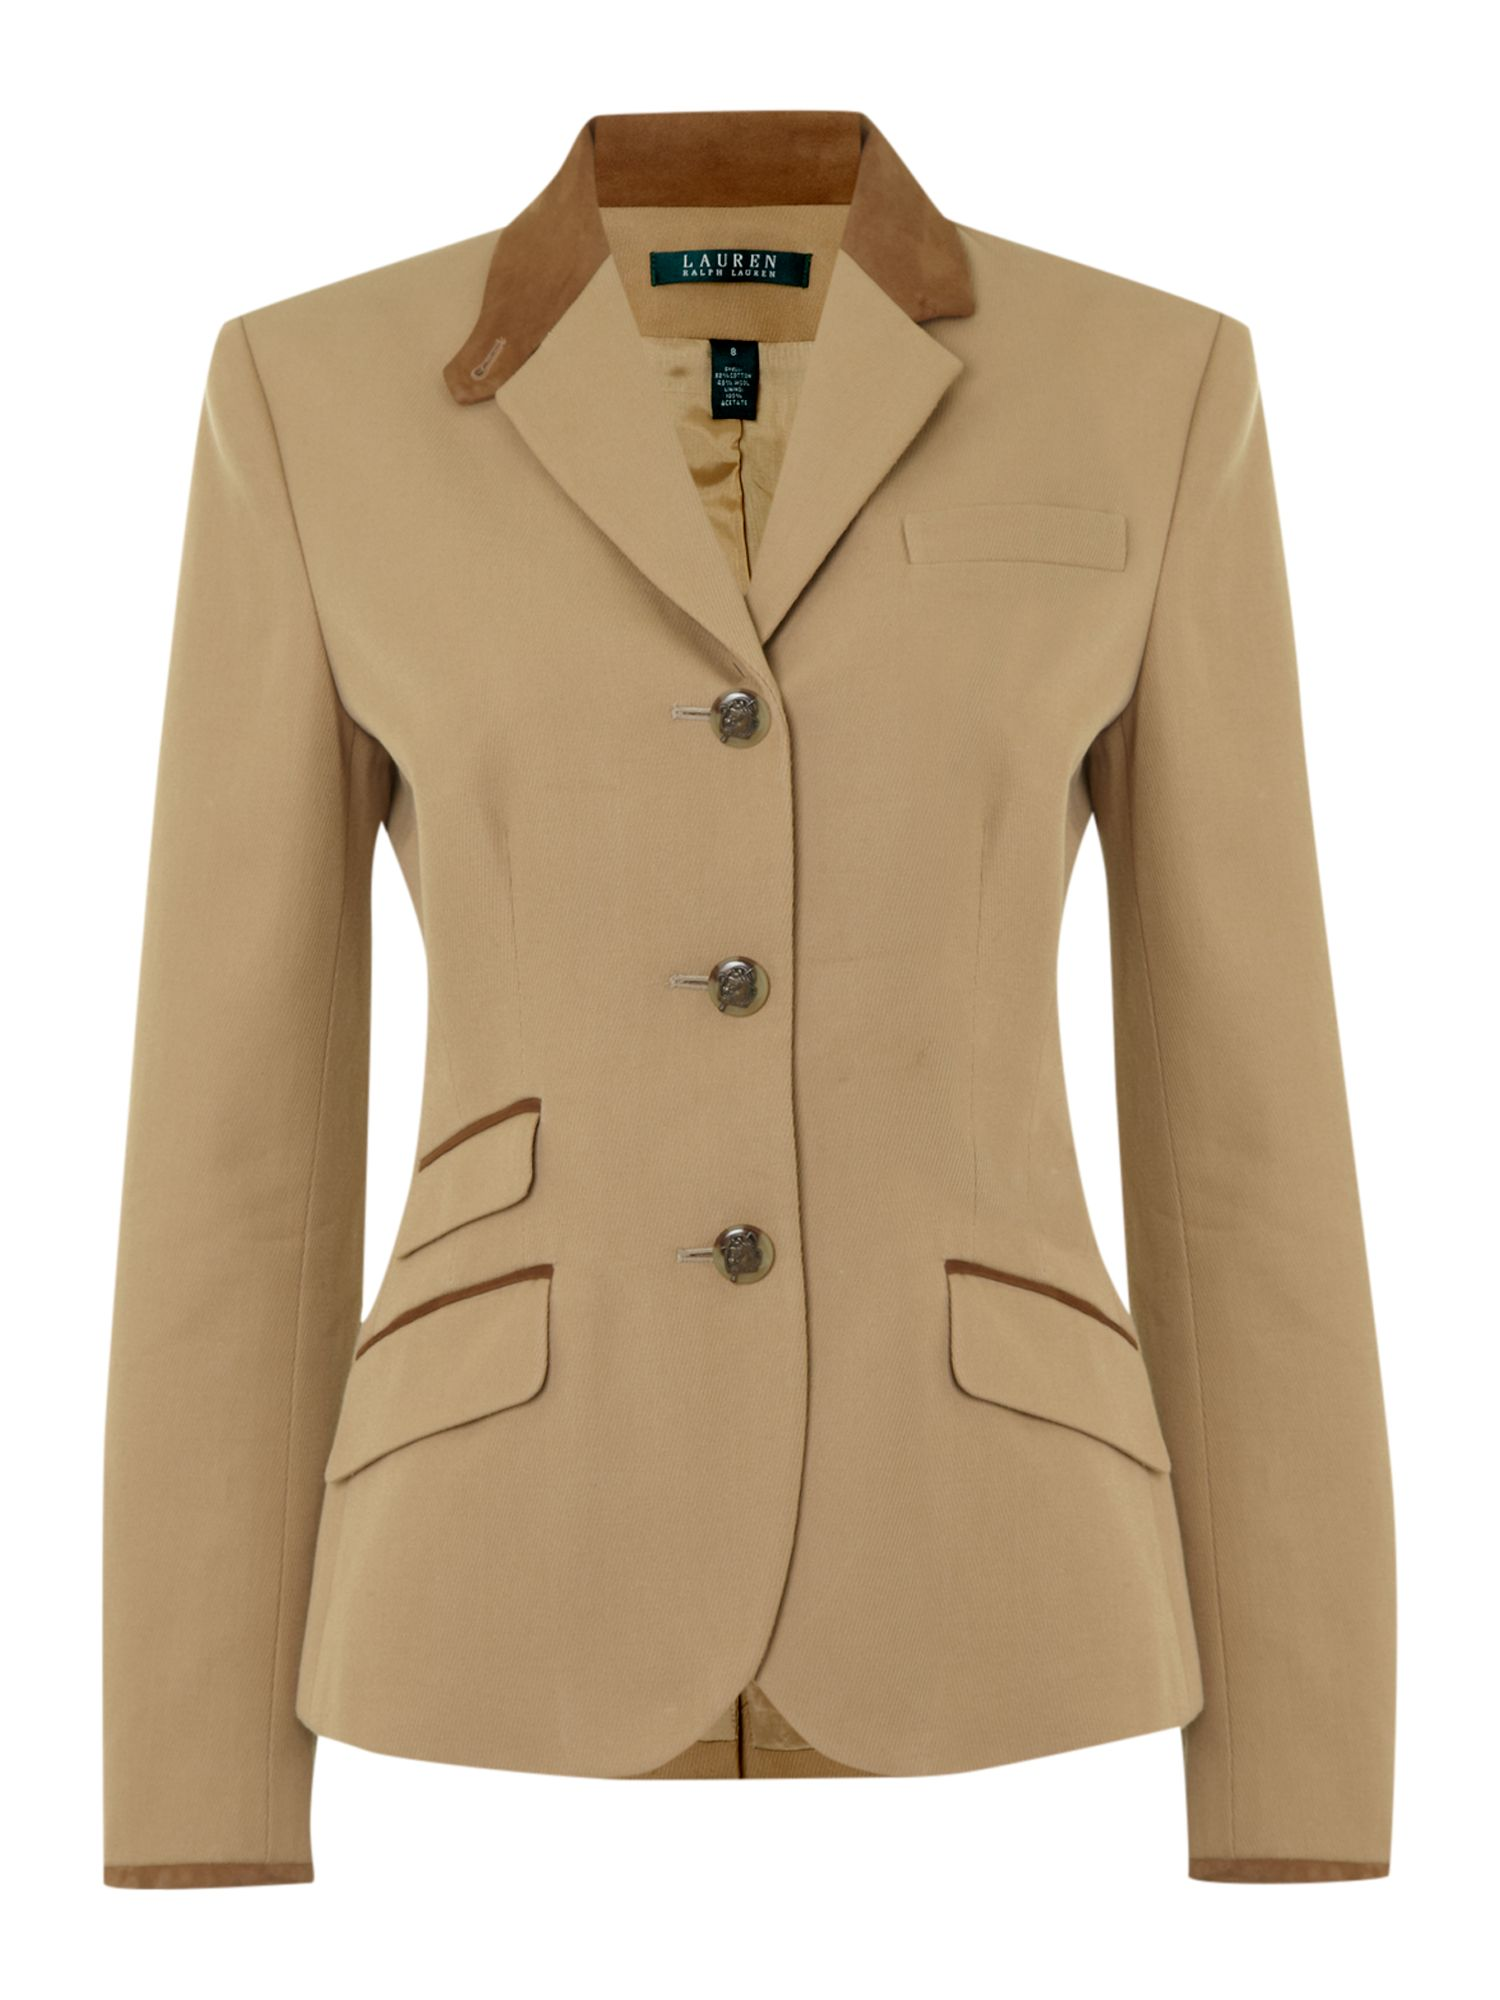 Jacket with 3 Button detail